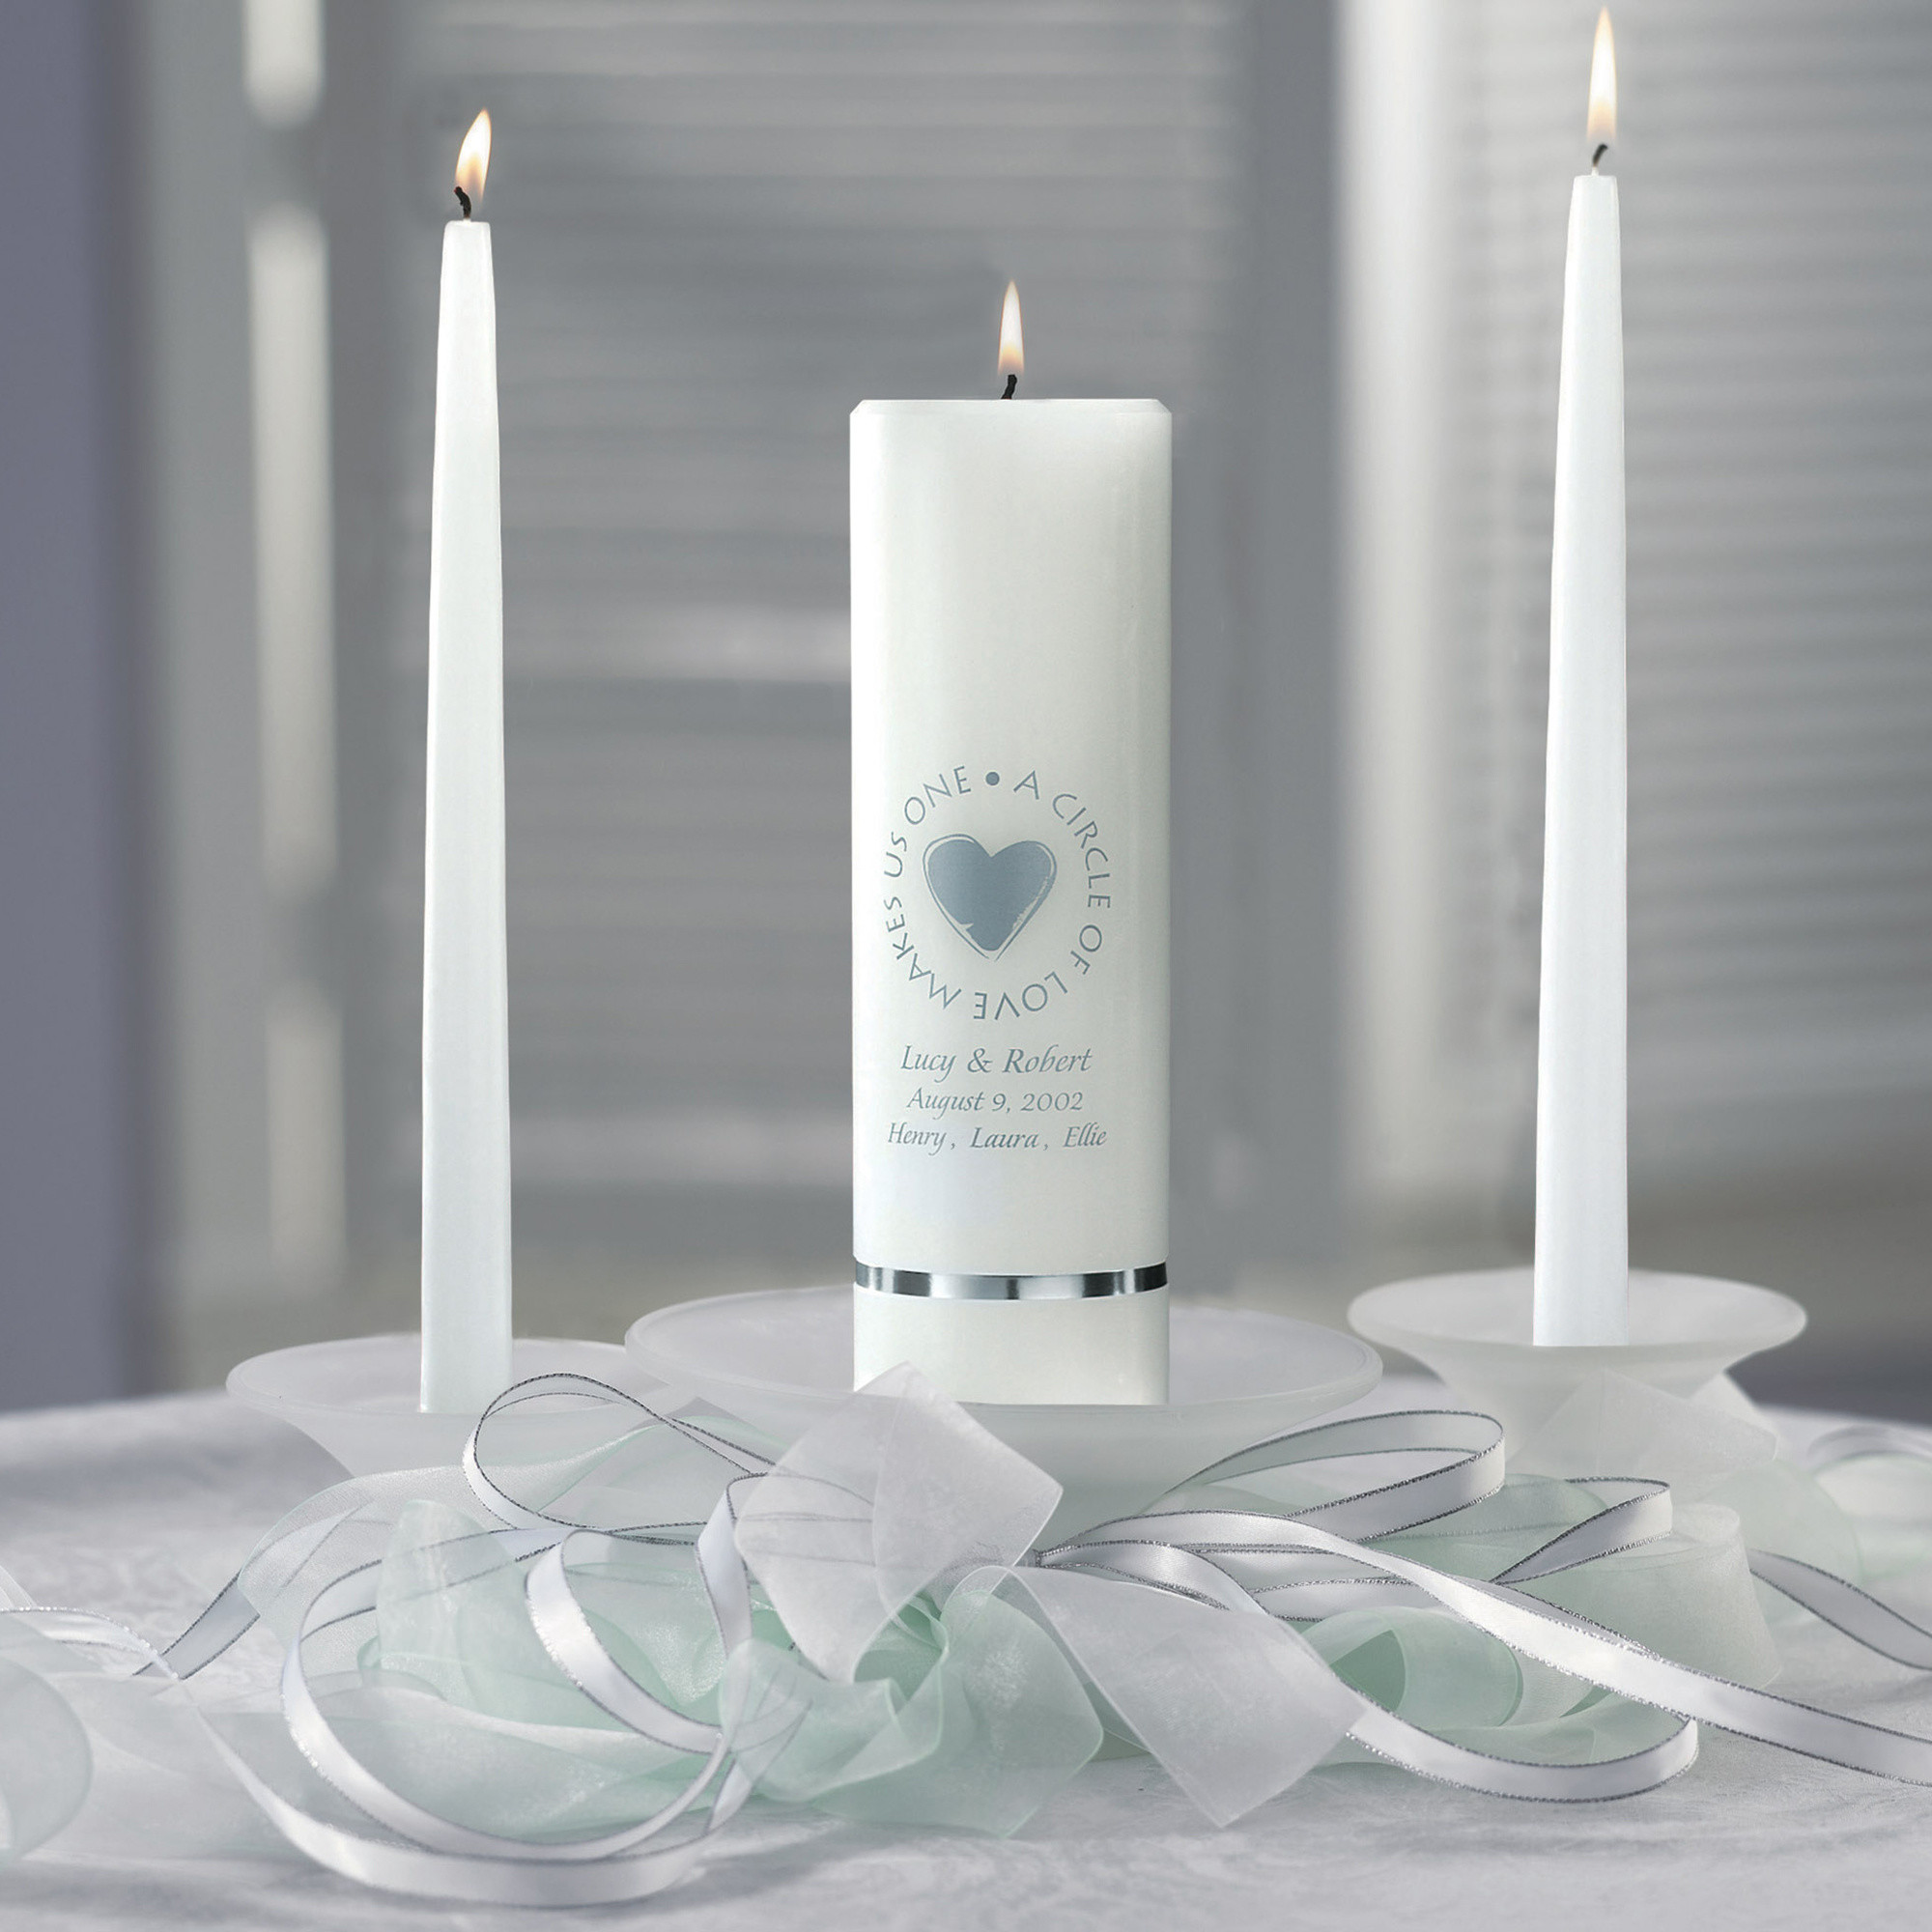 blended family wedding unity candle wedding unity candle